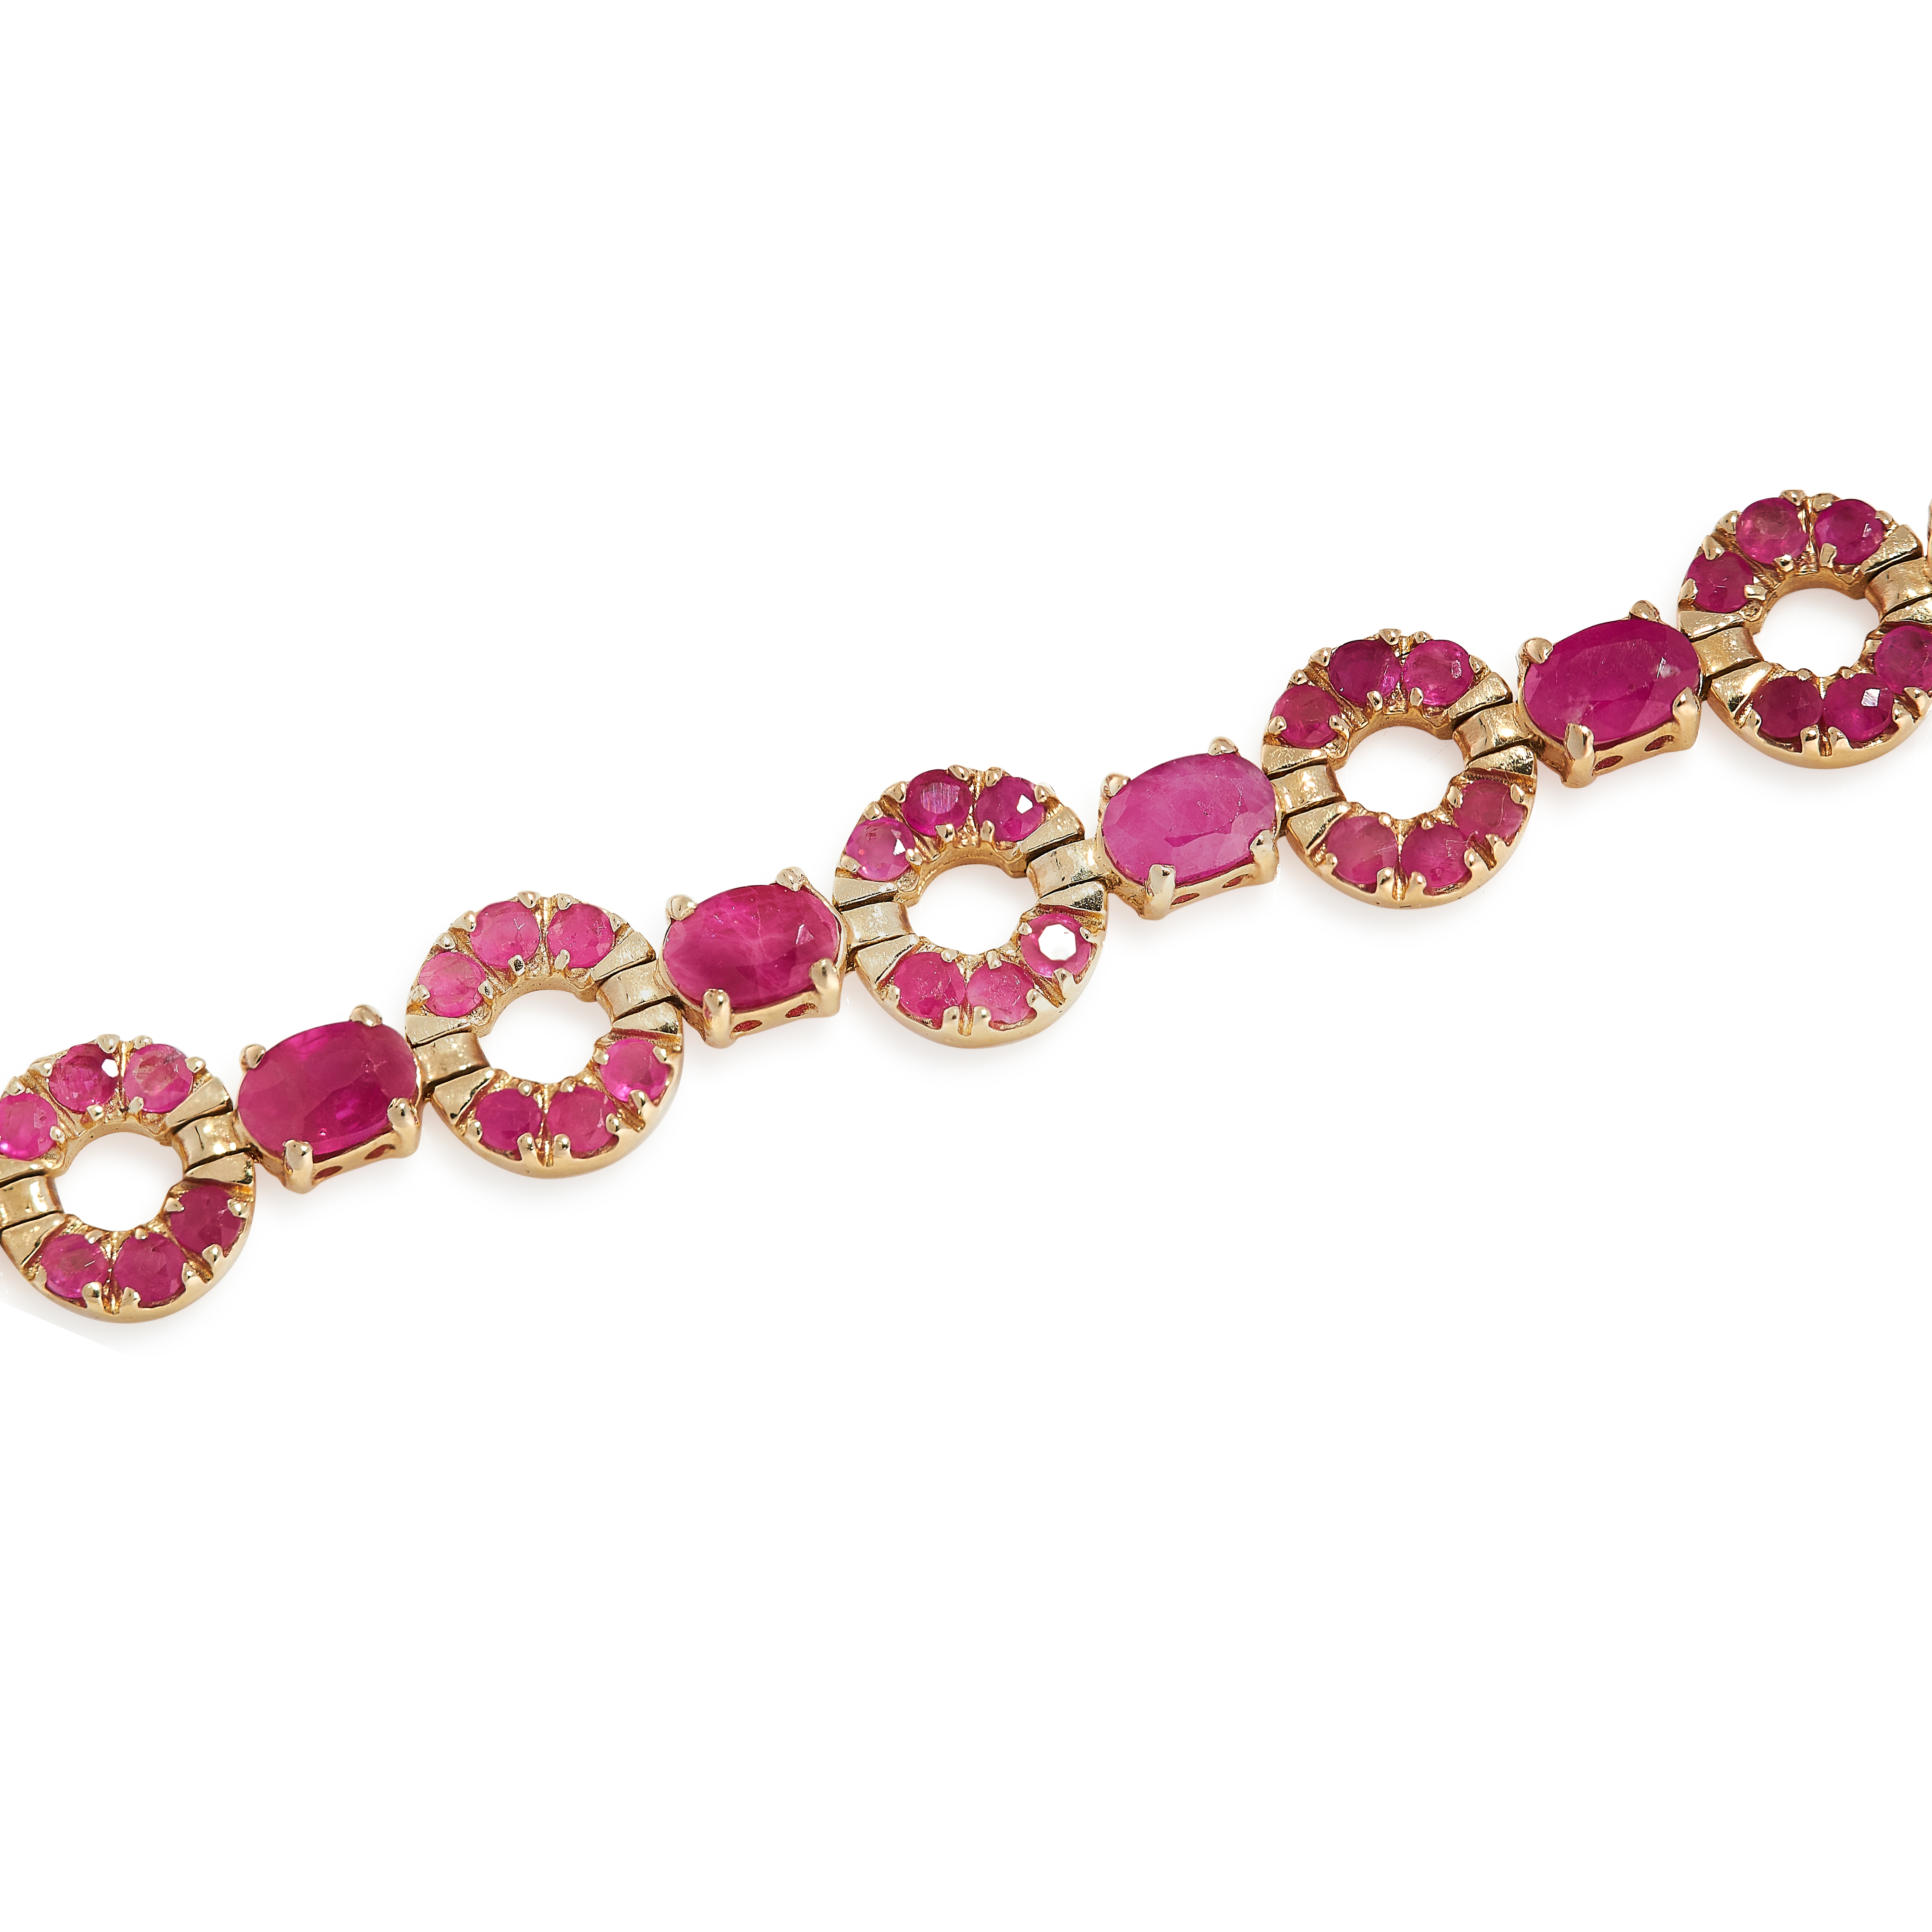 A RUBY BRACELET in 14ct yellow gold, designed as an articulated line of annular links pave set - Image 2 of 2